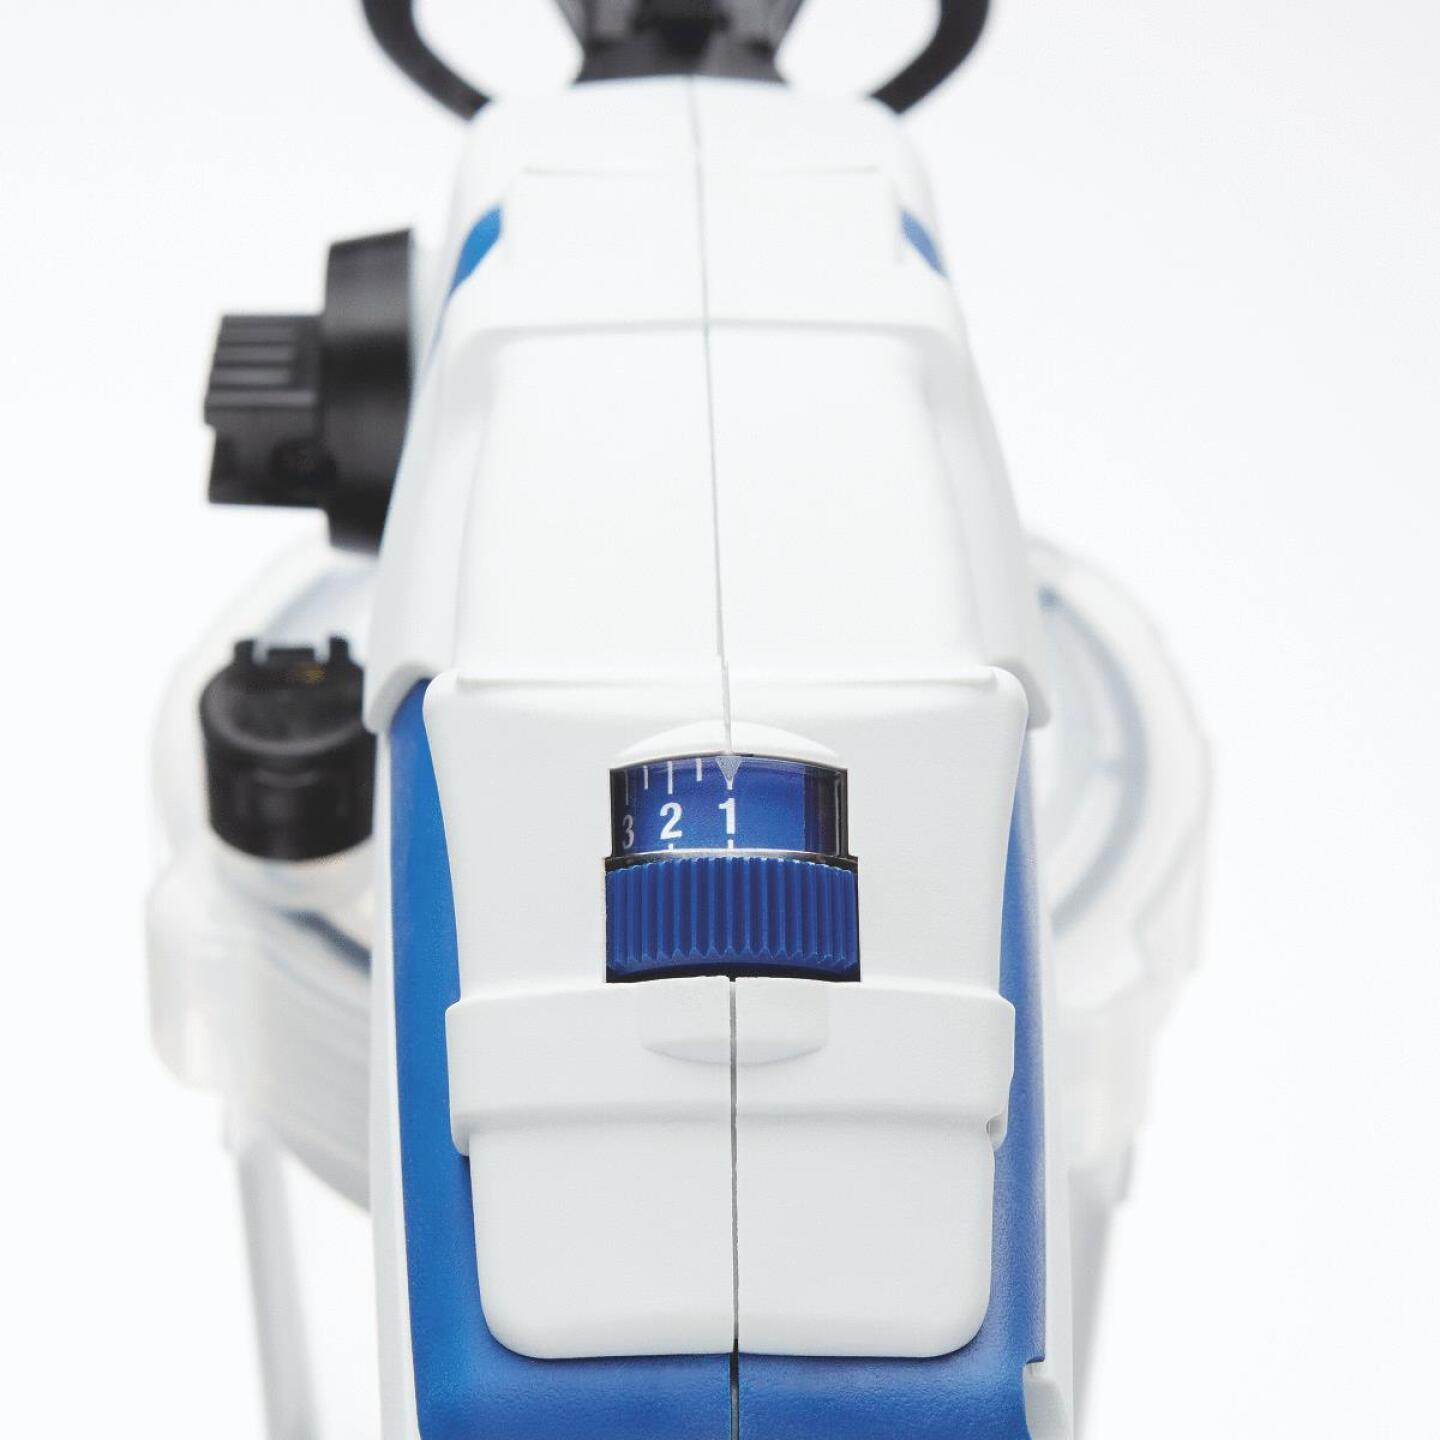 Graco TrueCoat 360 VSP Electric Airless Paint Sprayer Image 2